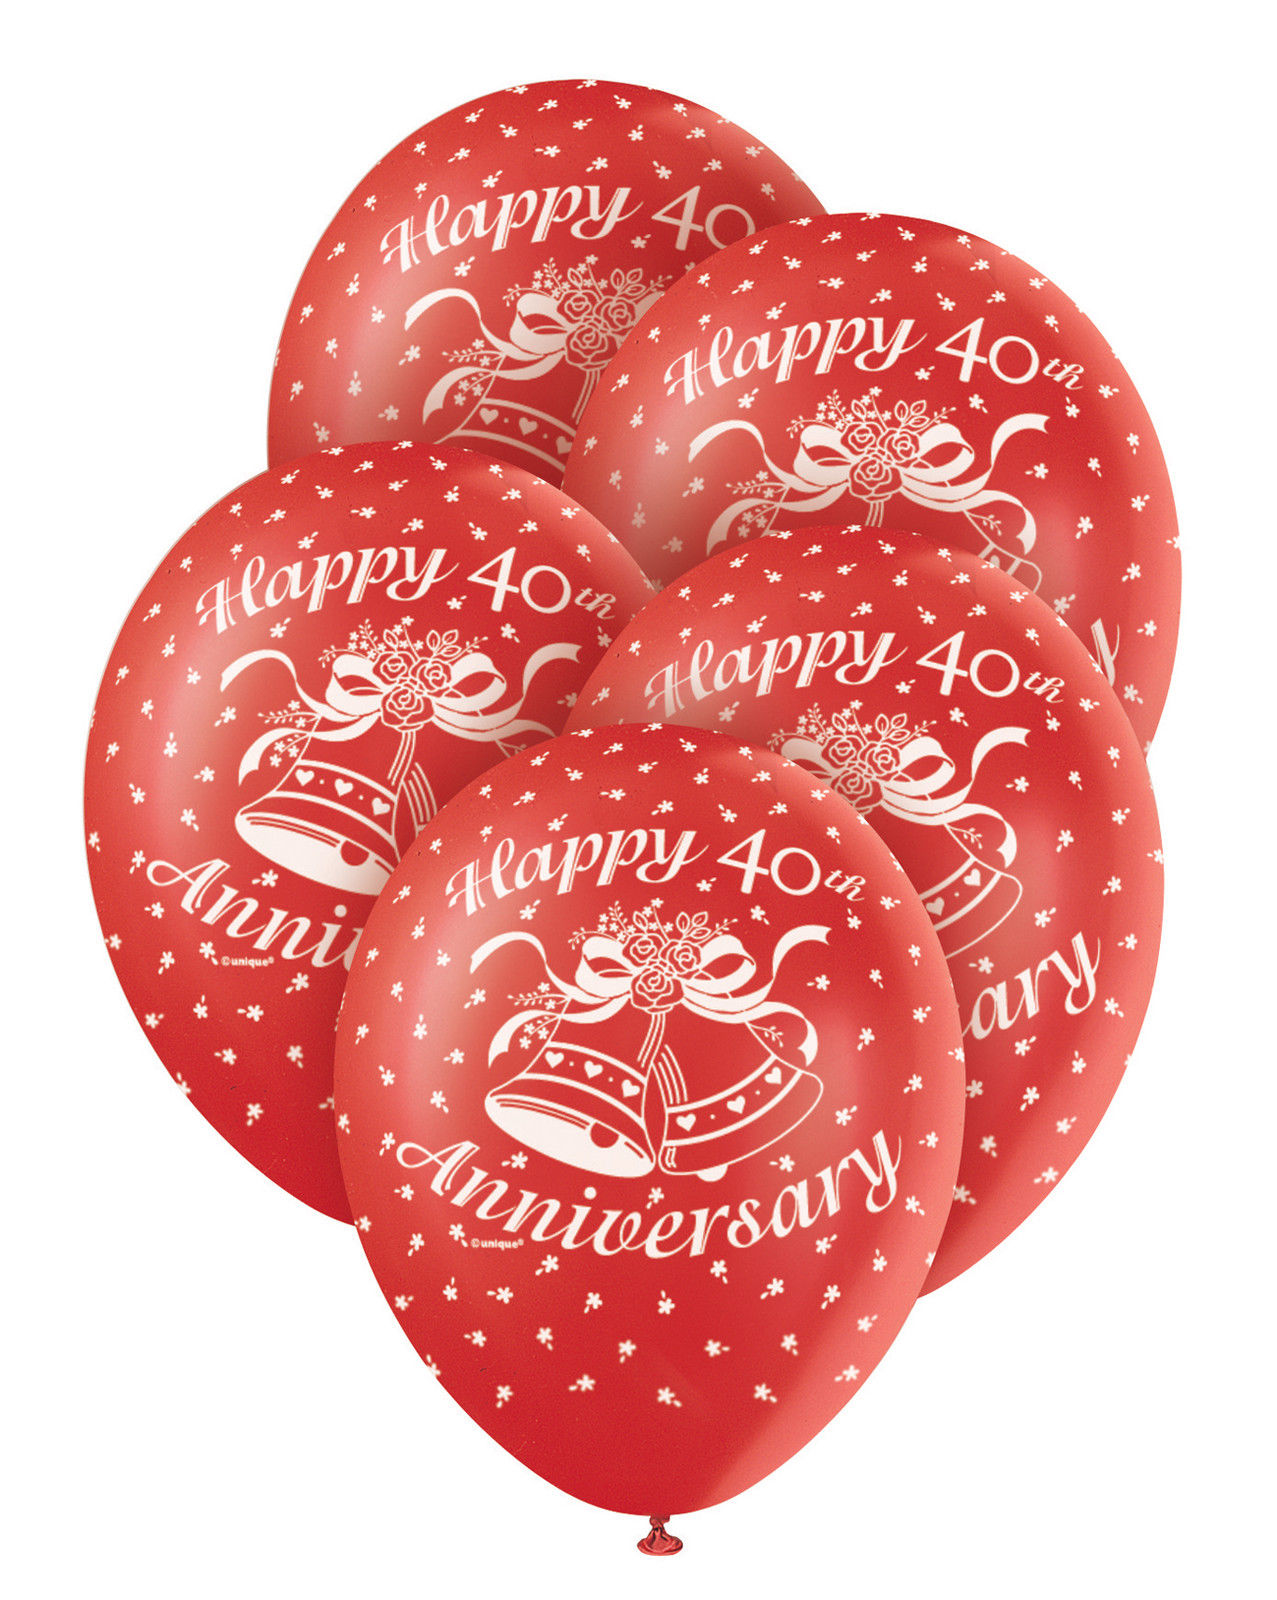 5 x 40th Wedding Anniversary Ruby Wedding Balloons Party Decorations ...